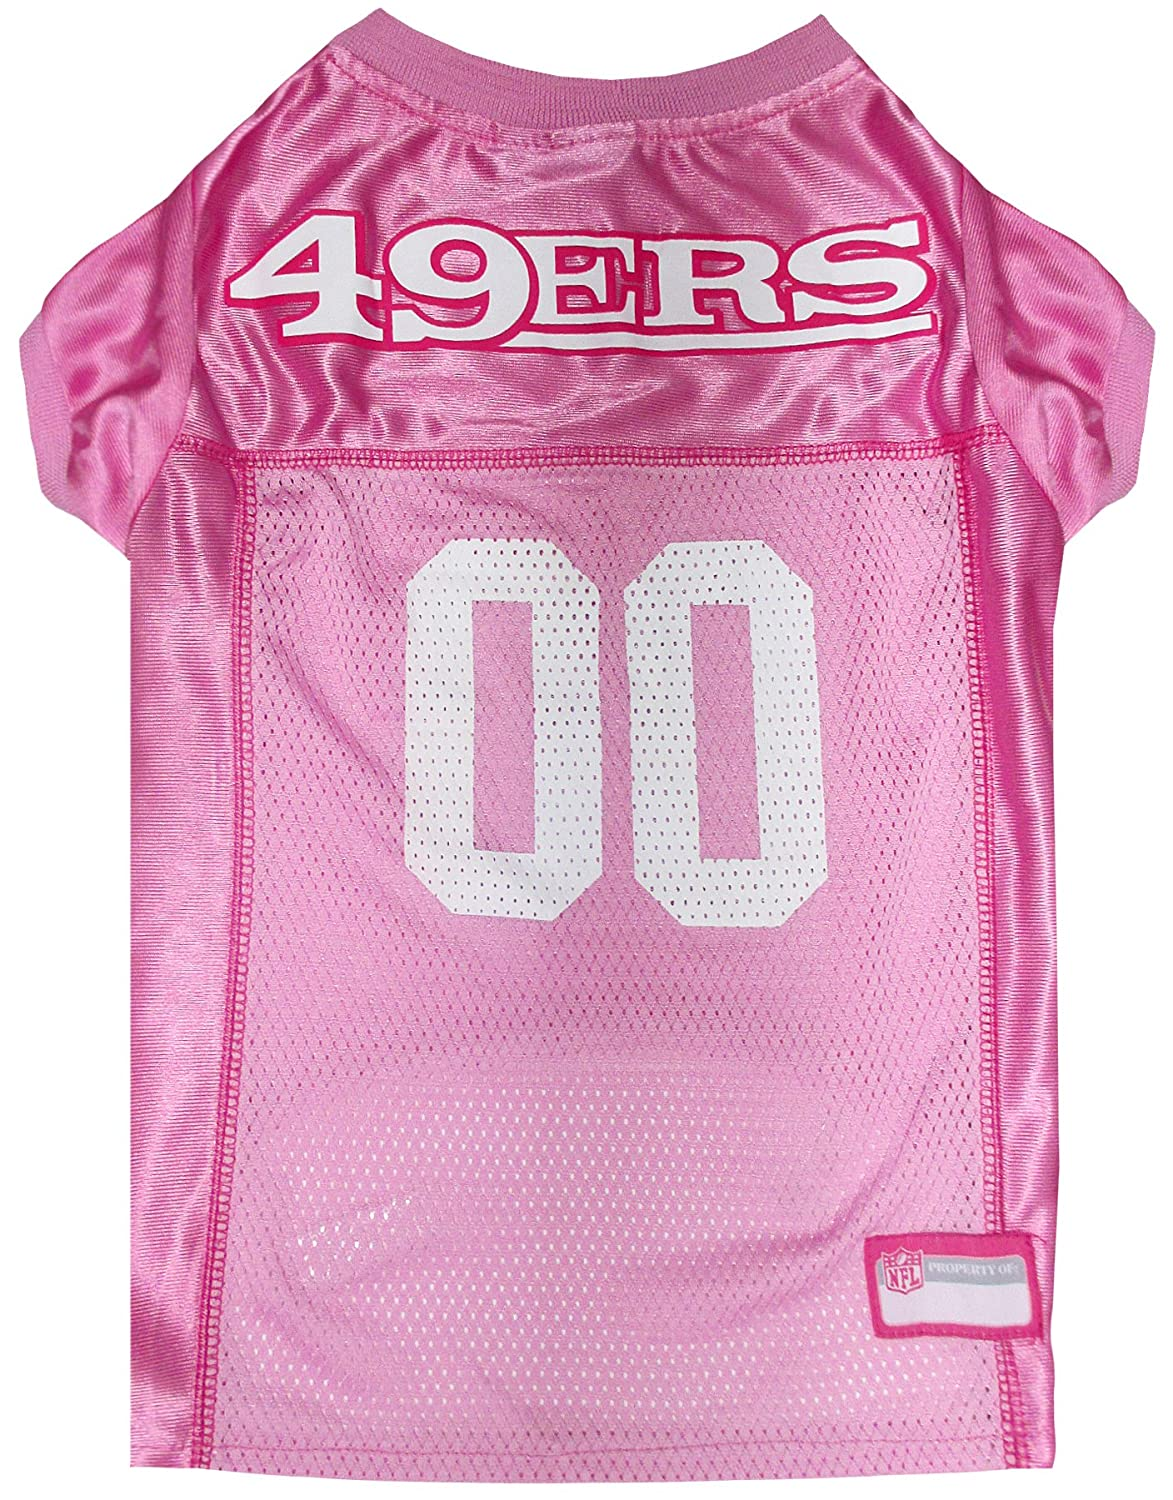 4201a2318 Amazon.com   Pets First NFL San Francisco 49ers Jersey